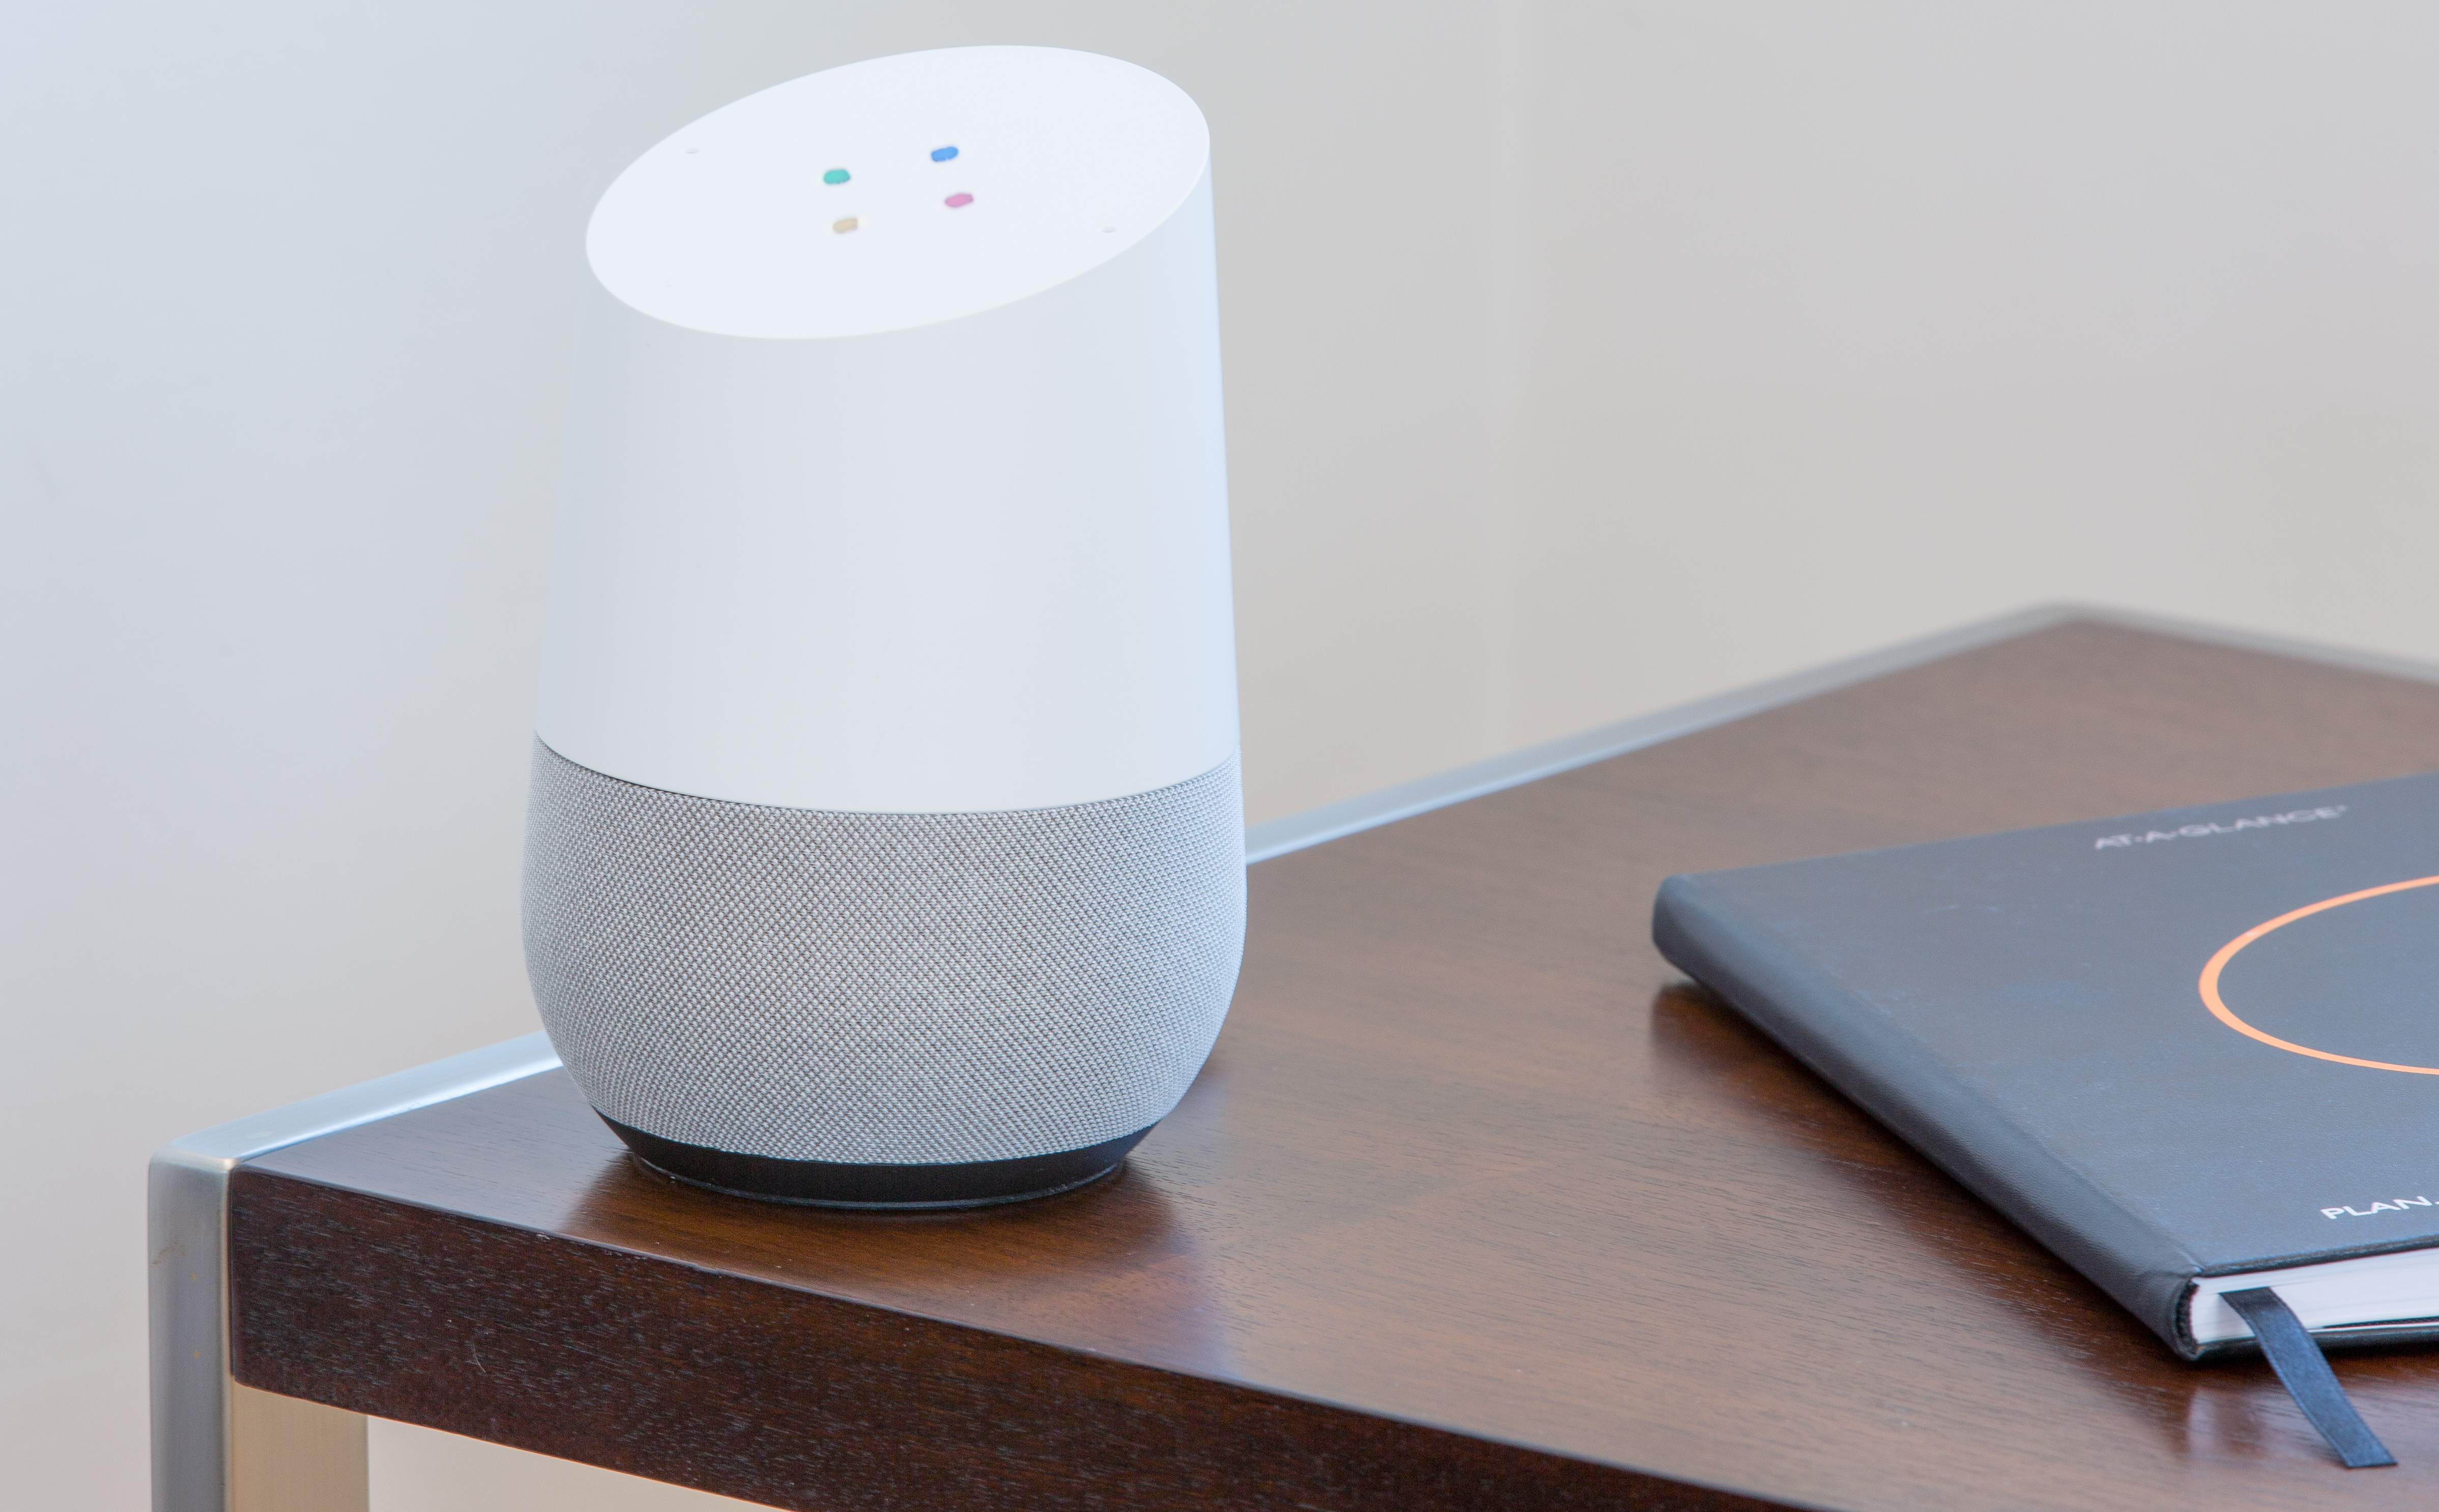 Google Home speaker kopen in Nederland 2018